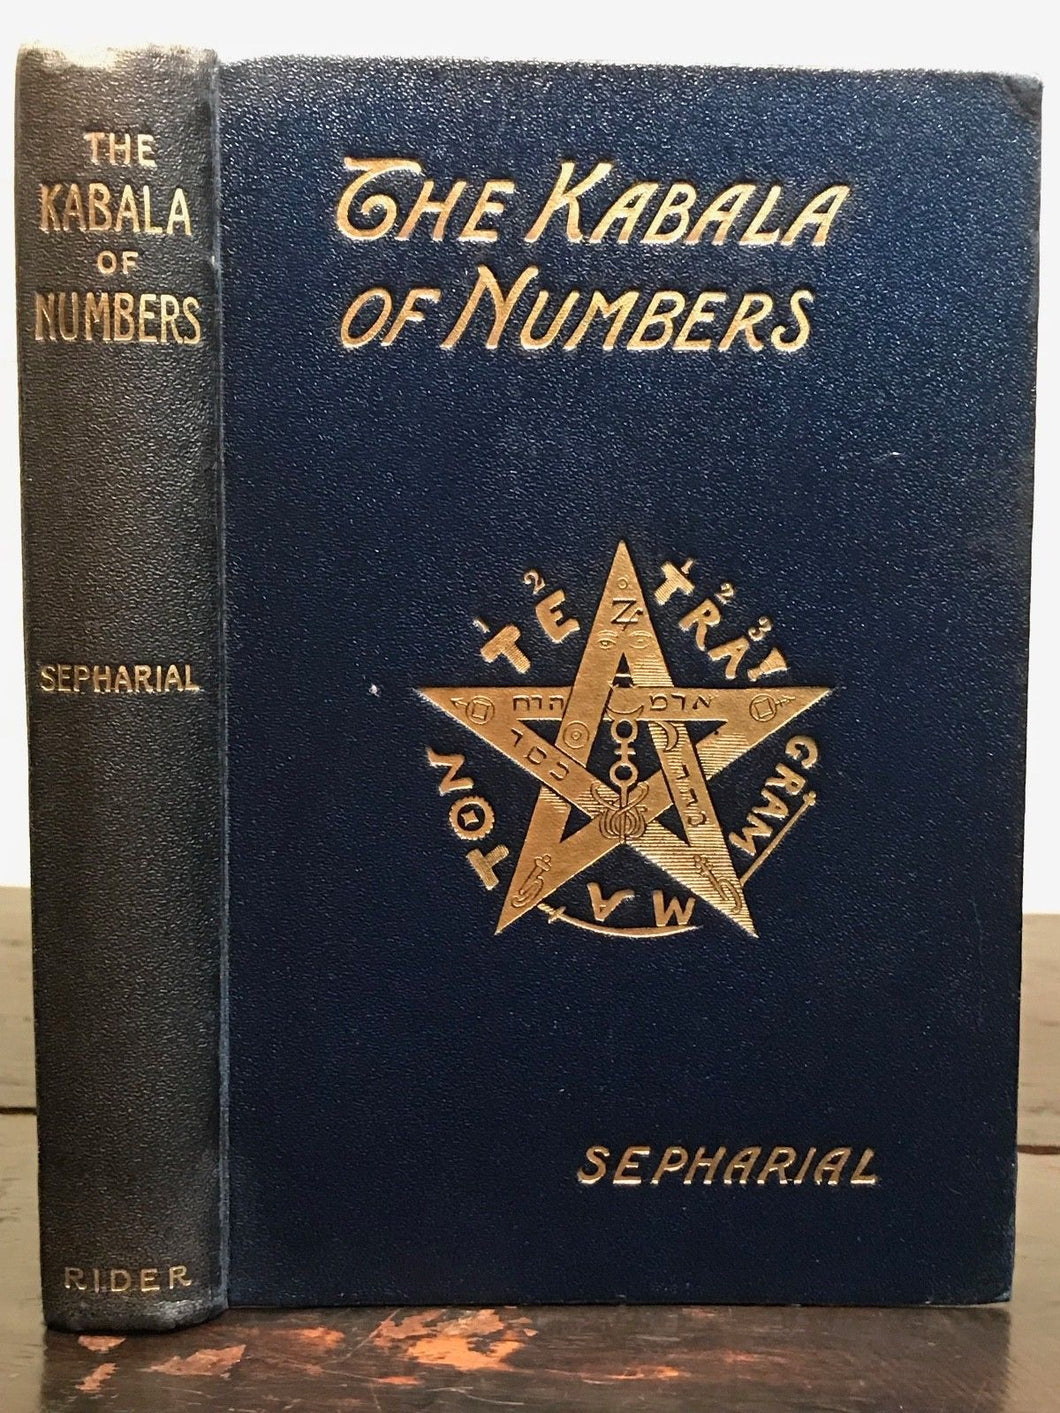 SEPHARIAL - THE KABALA OF NUMBERS, 1st/1st 1911 KABALISTIC NUMEROLOGY DIVINATION